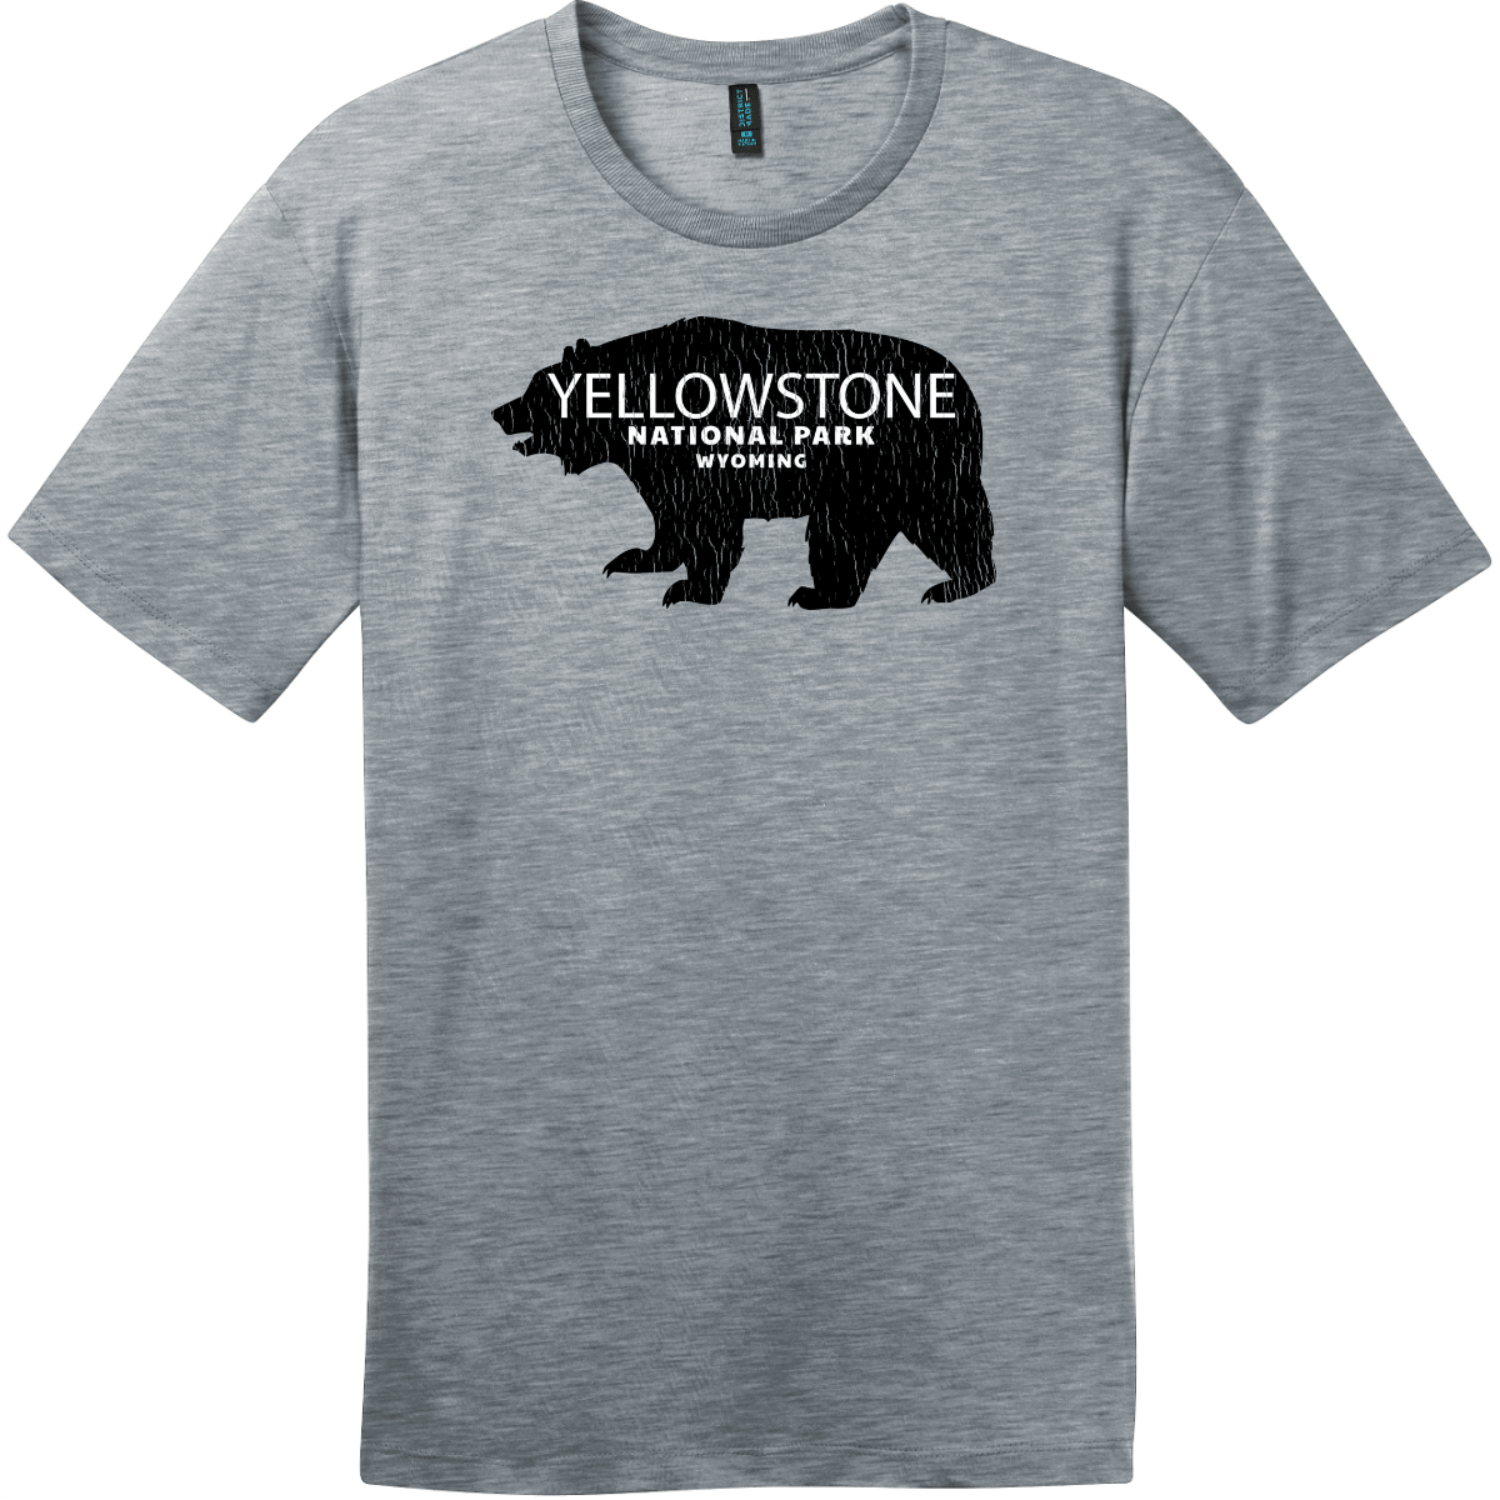 Yellowstone National Park Wyoming Bear T-Shirt Heathered Steel District Perfect Weight Tee DT104